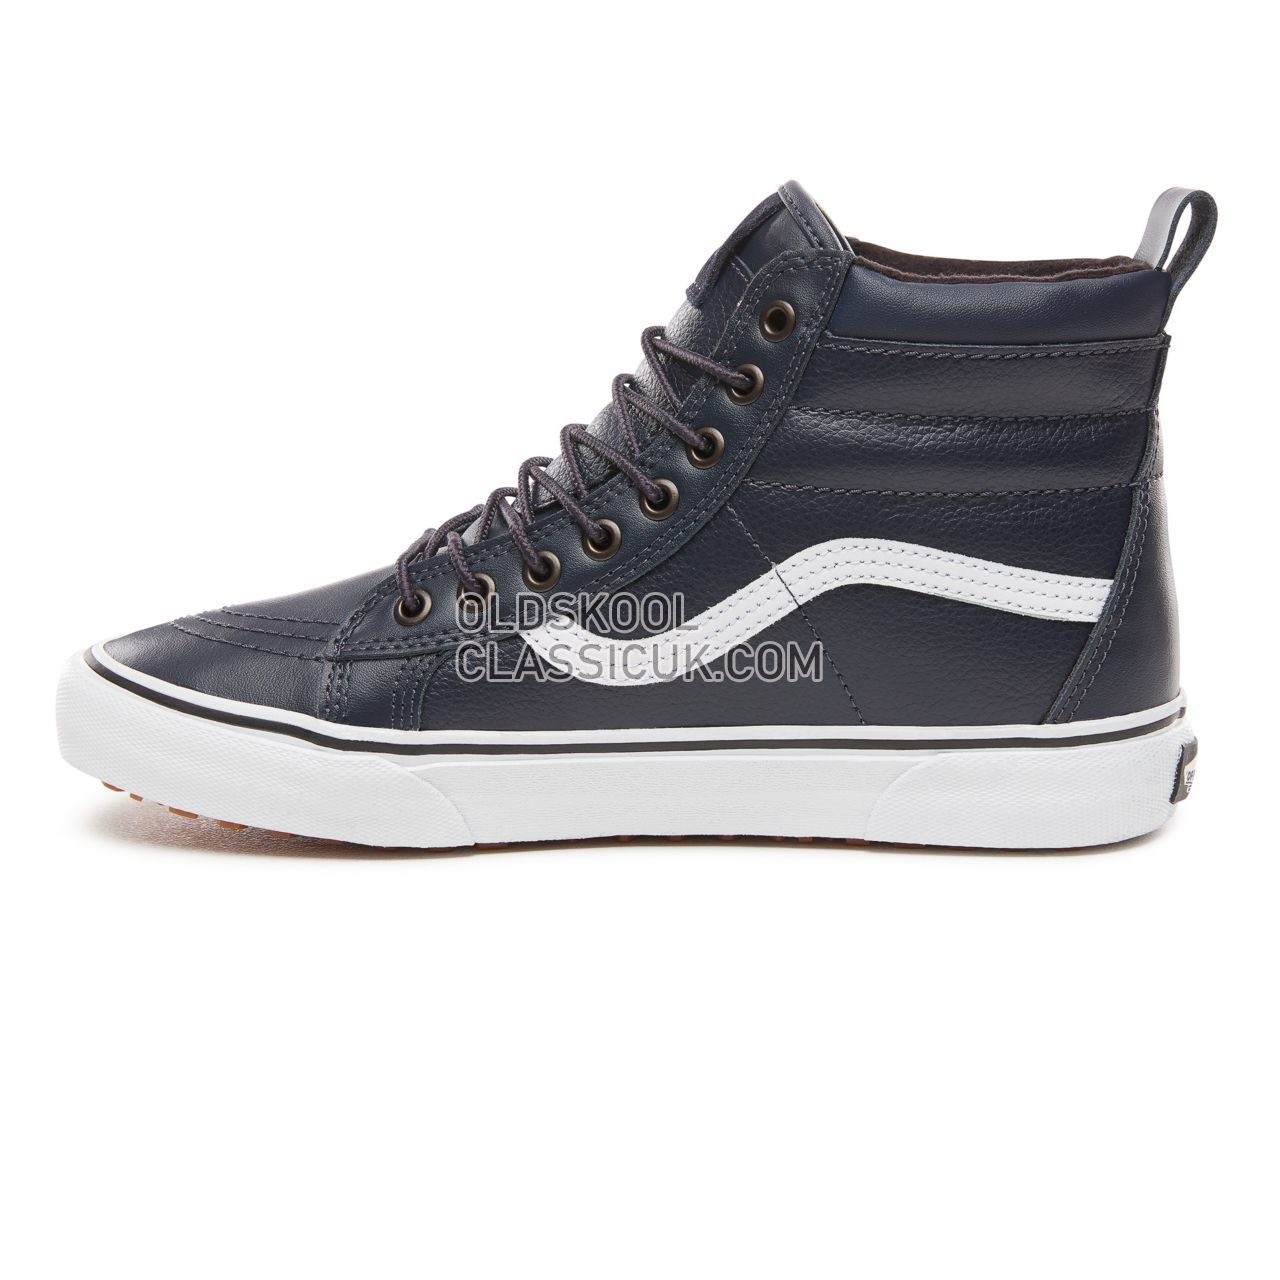 649e2fcc54 ... Vans Sk8-Hi Mte Sneakers Mens (Mte) Sky Captain Leather VN0A33TXUQD  Shoes ...